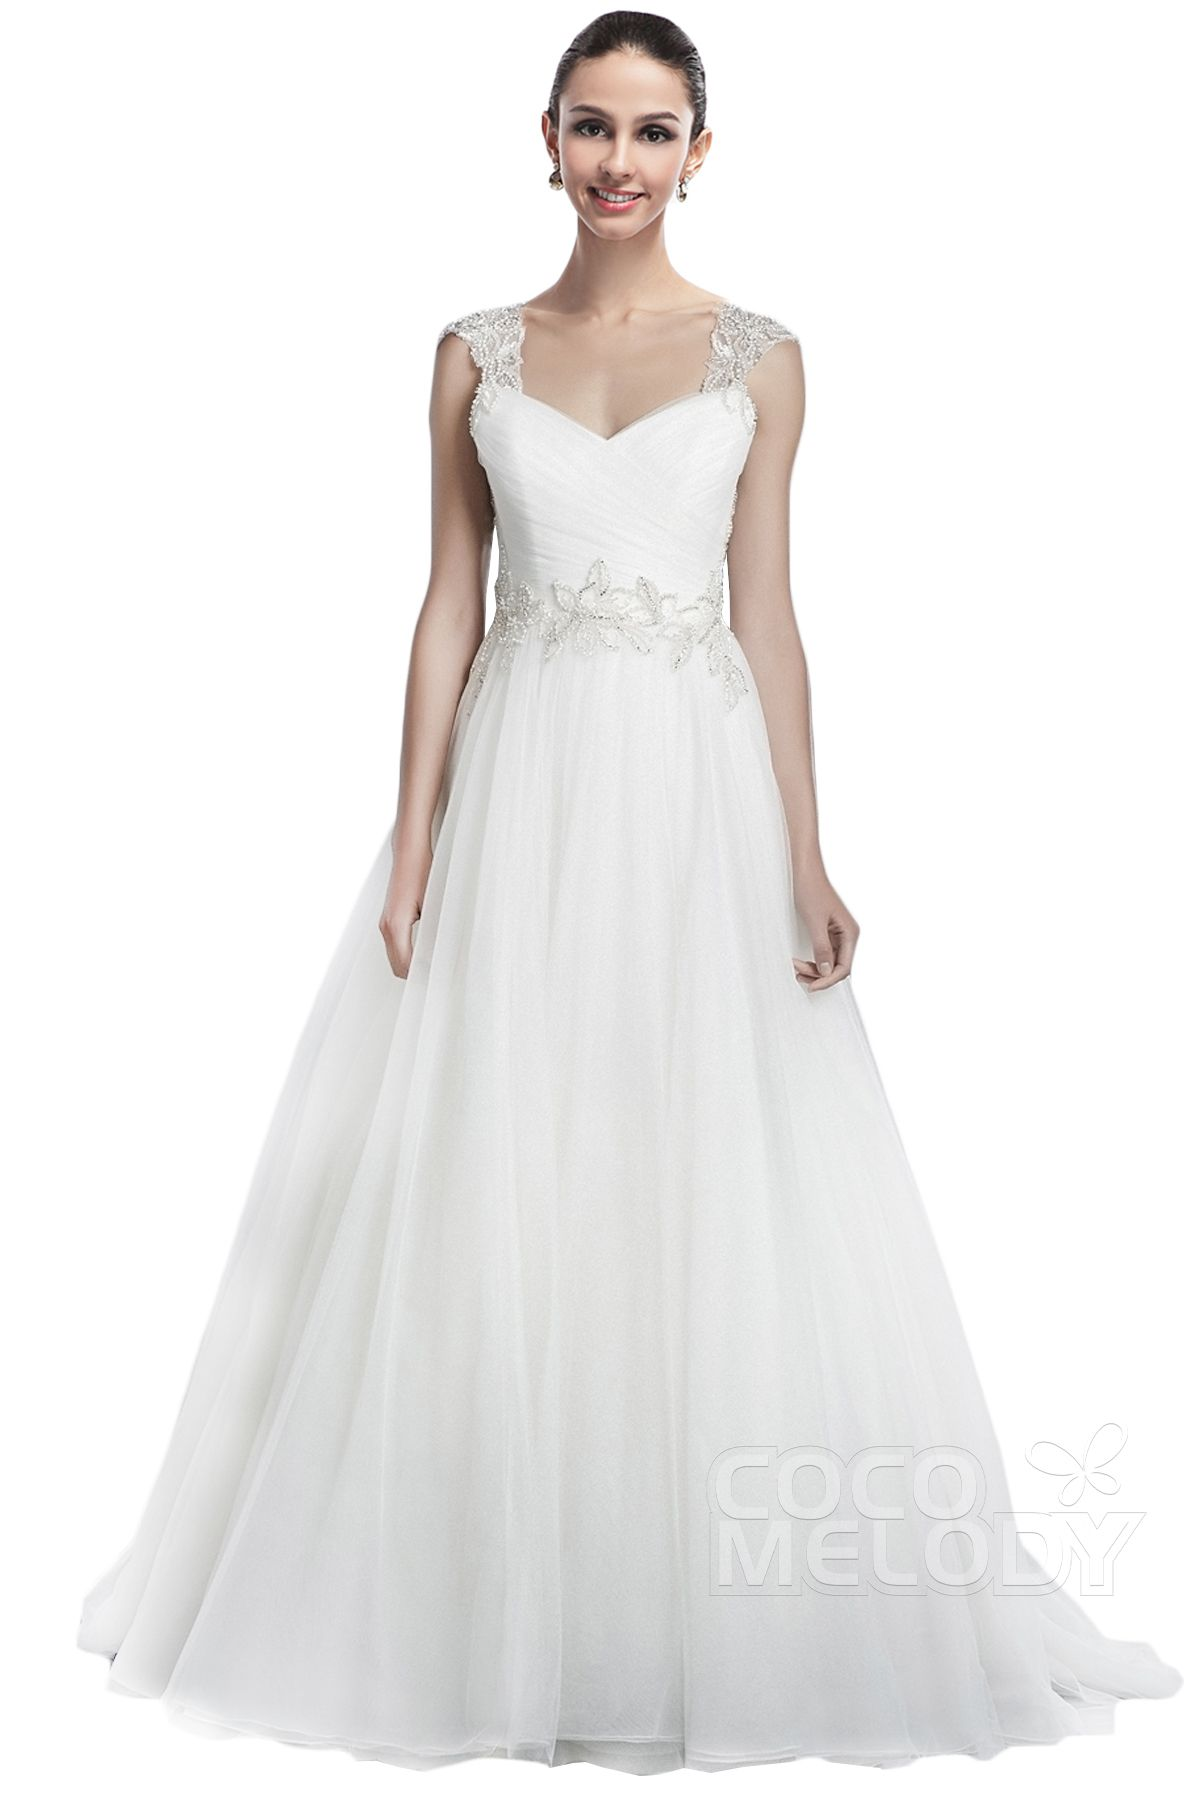 A-Line Sleeveless Open Back Wedding Dress #weddingdress #cocomelody